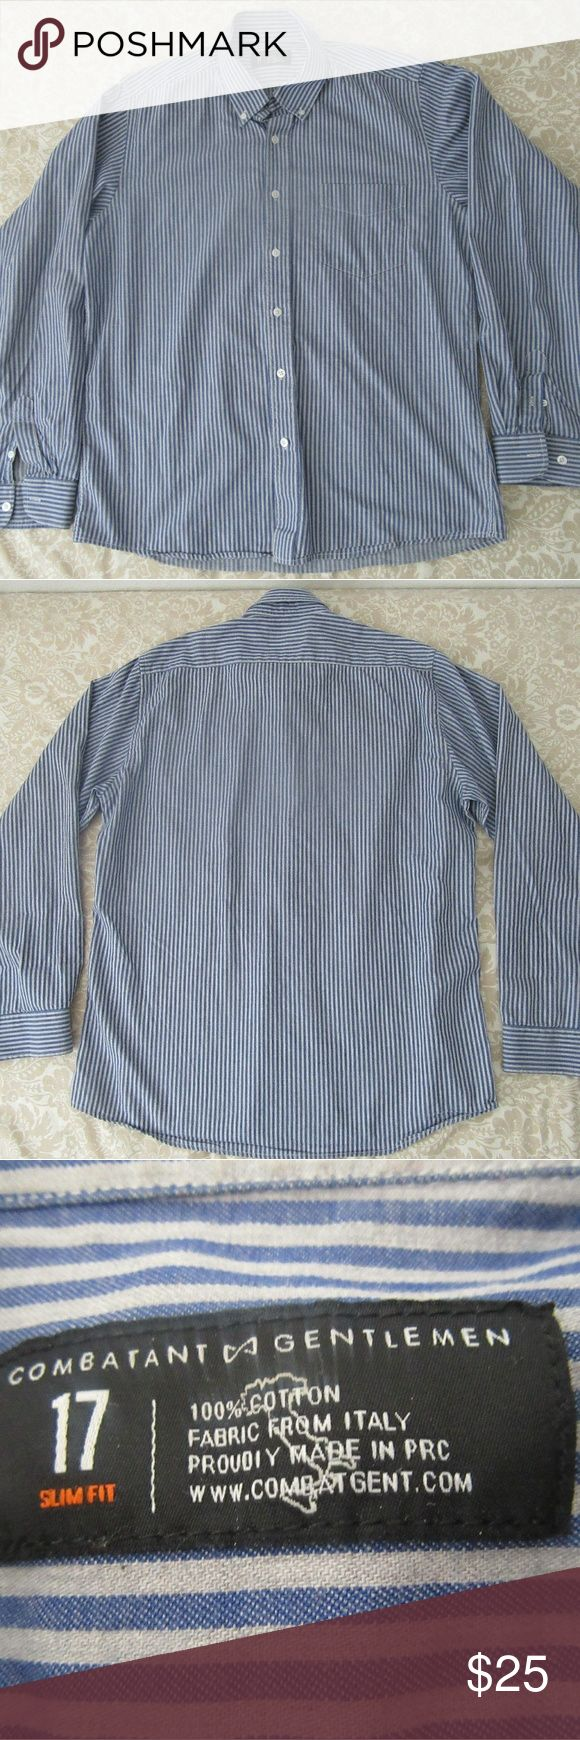 combatant gentleman striped long sleeve button up great shape  combatant gentleman striped long sleeve button up shirt sz 17 slim fit   pit to pit 23  shoulder to cuff 25  top to bottom 30  shoulder to shoulder 18 Shirts Dress Shirts